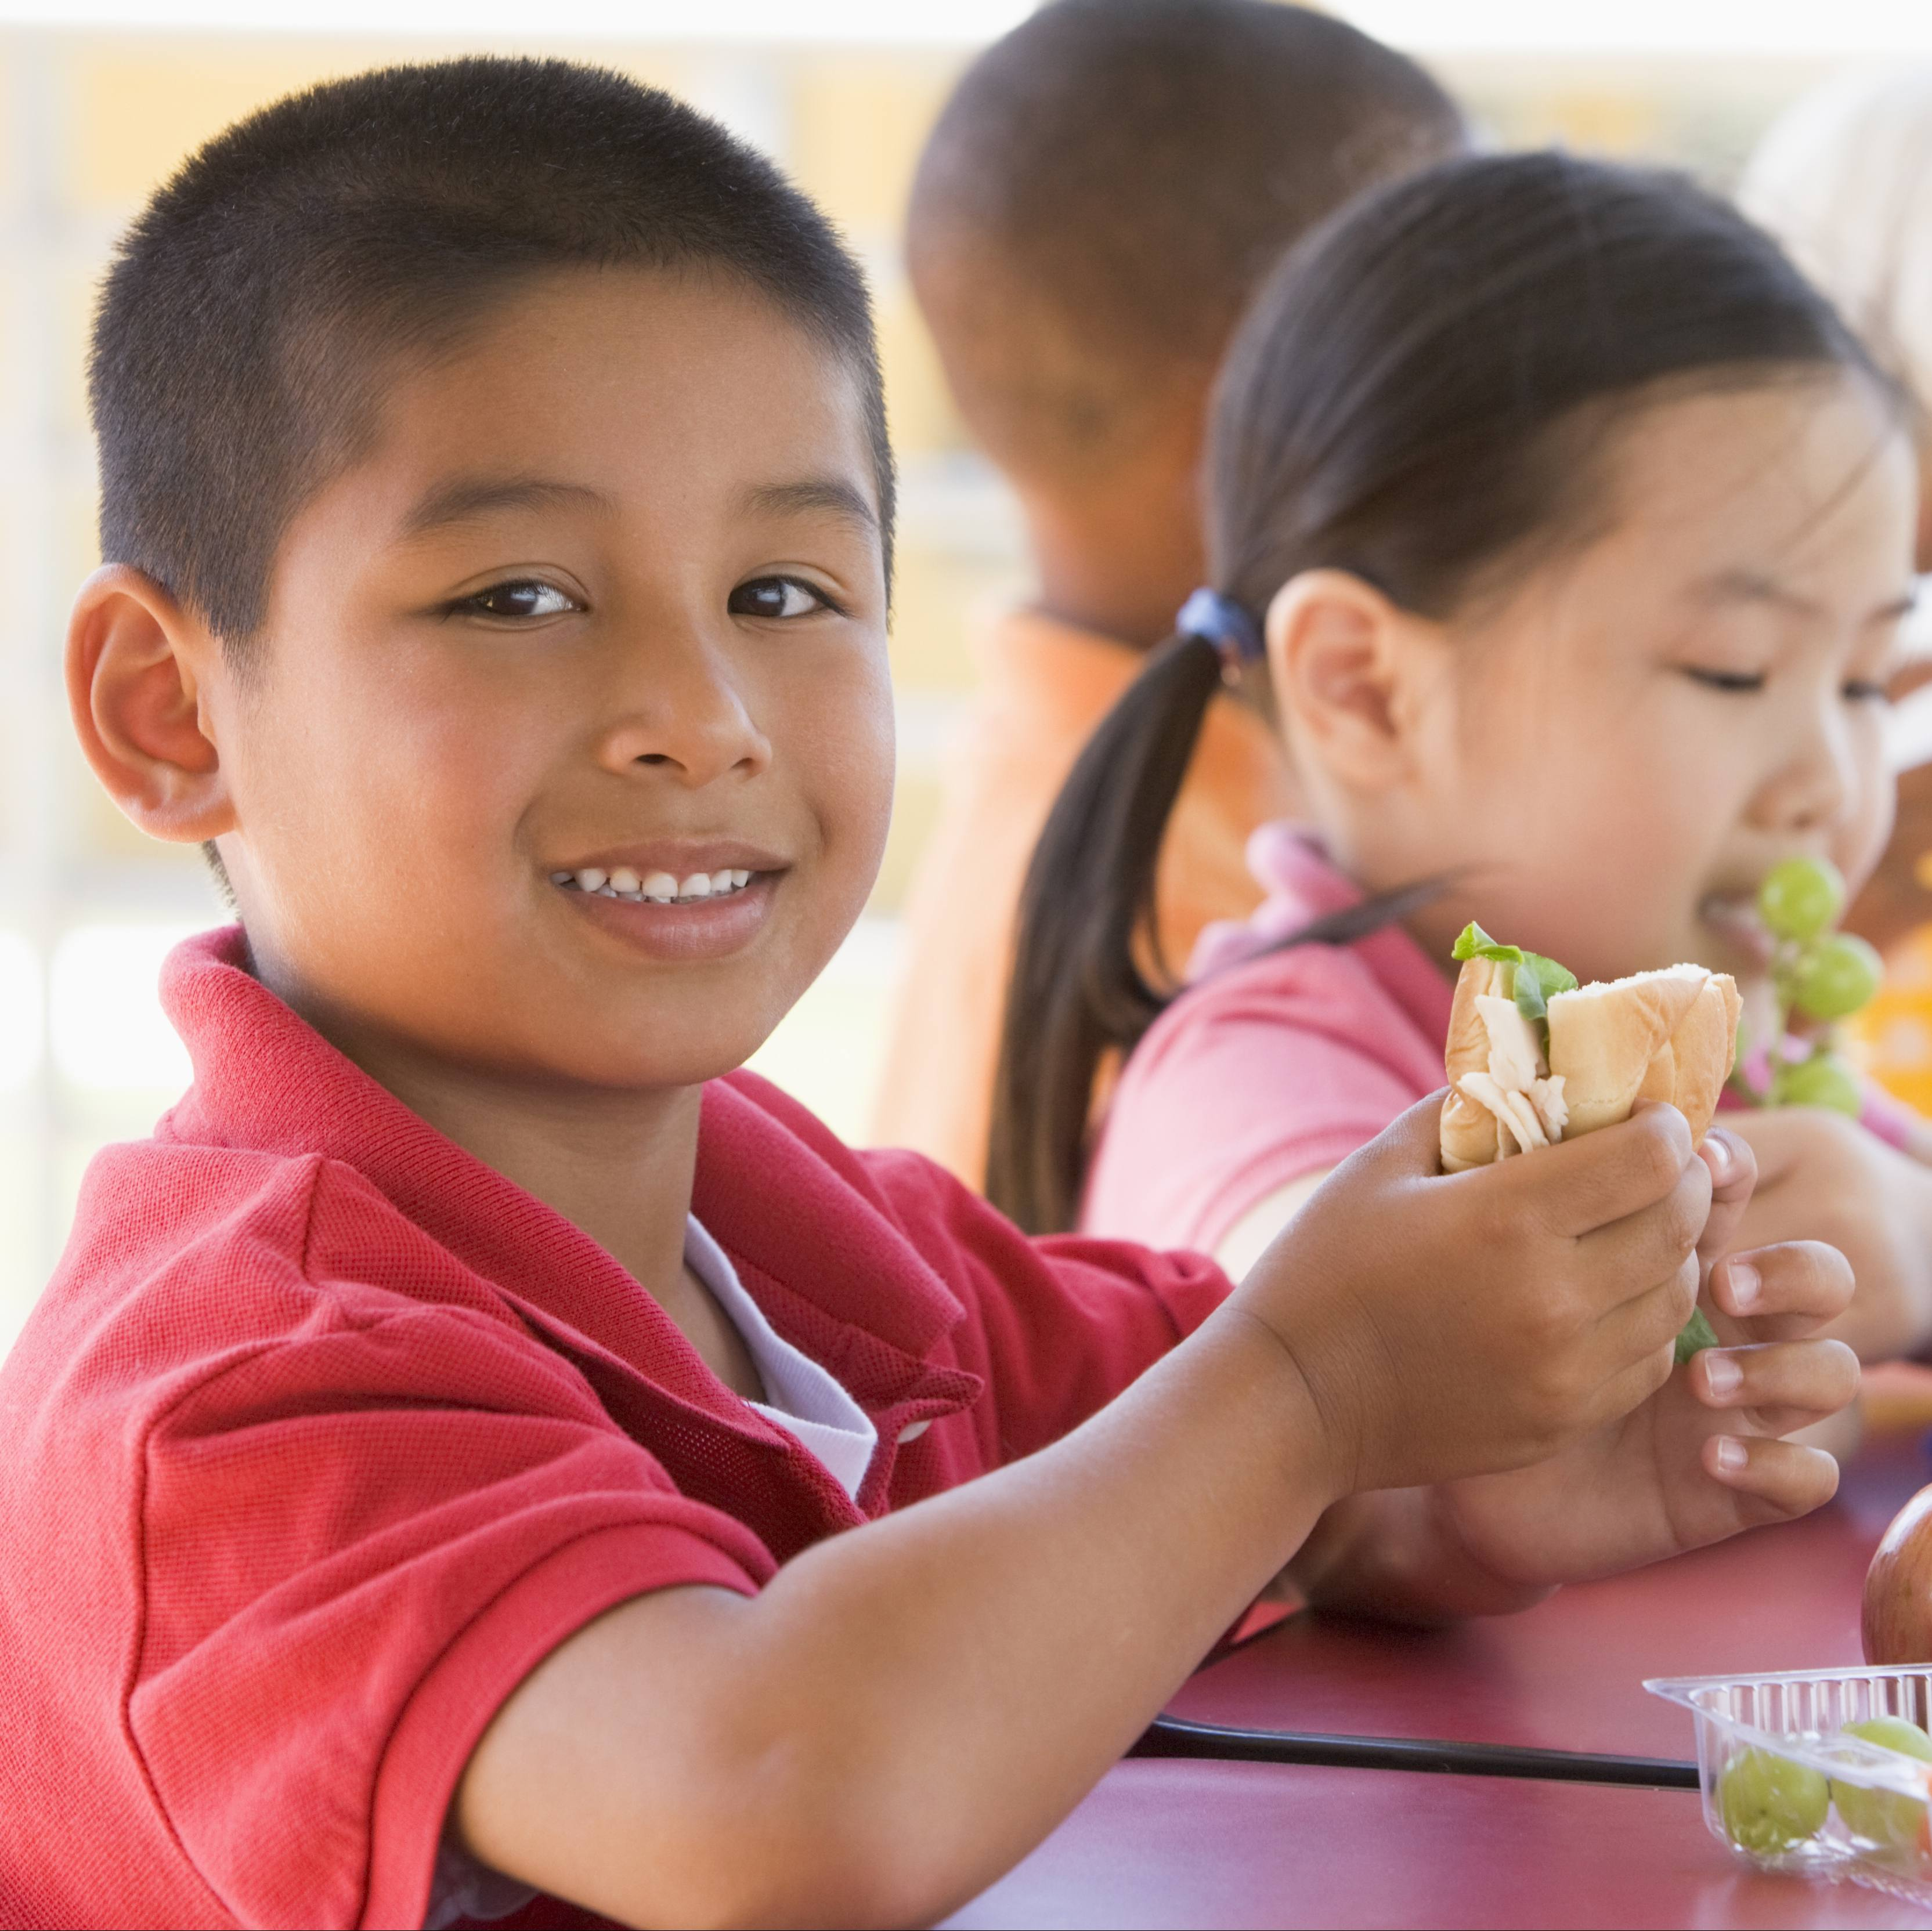 children eating at a school lunch table, a little boy holding a sandwich and a little girl eating grapes